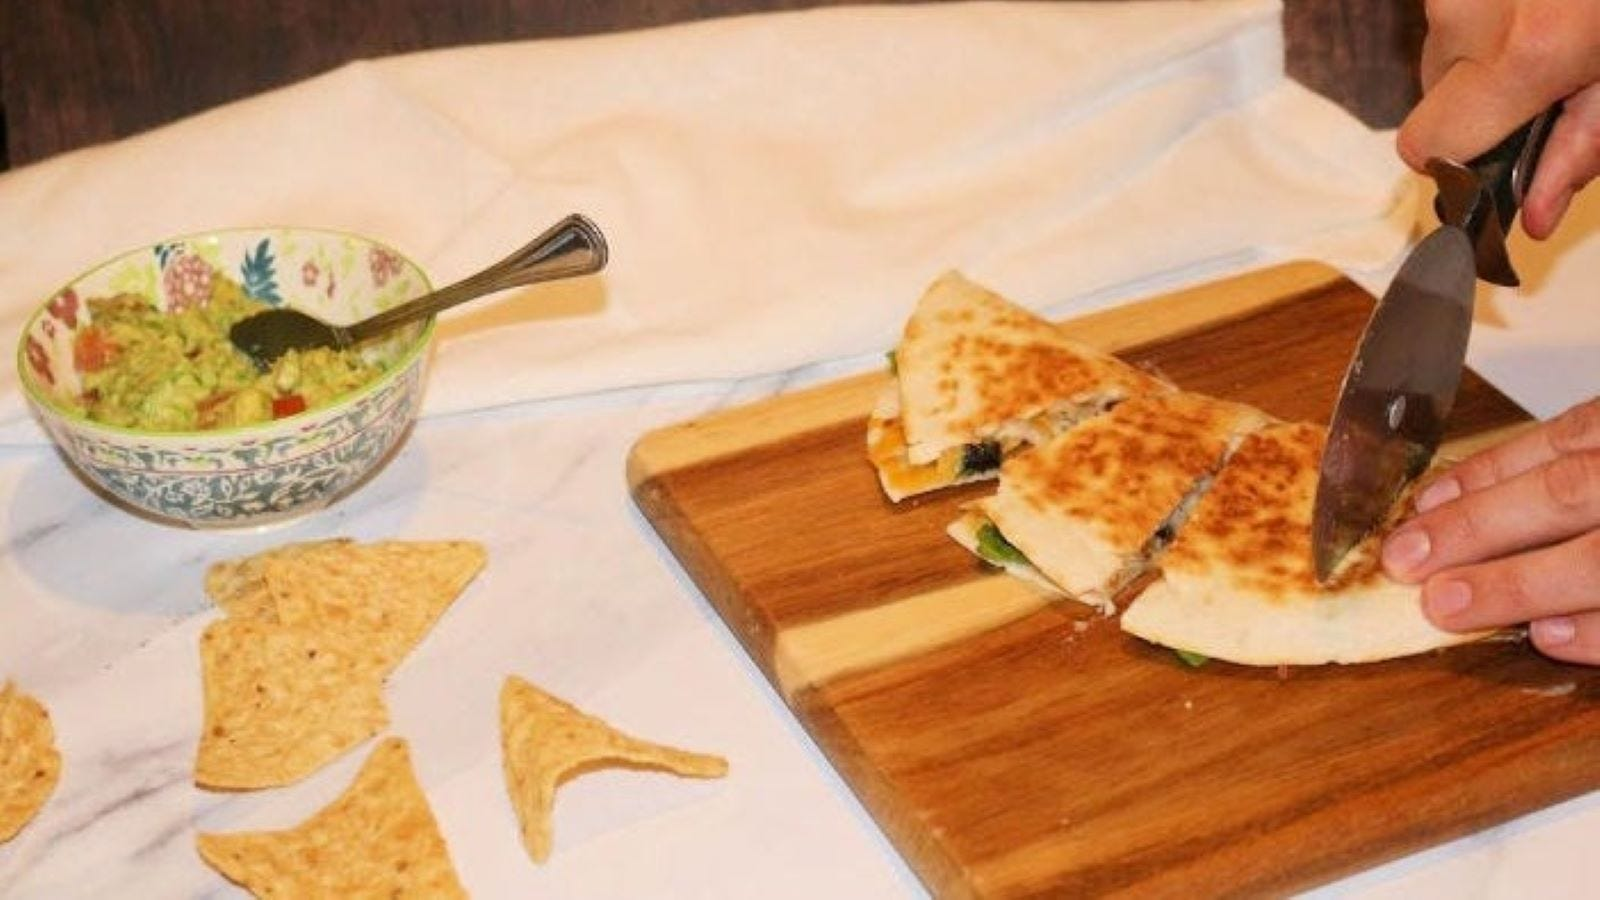 Someone slicing cheese quesadillas on a cutting board.